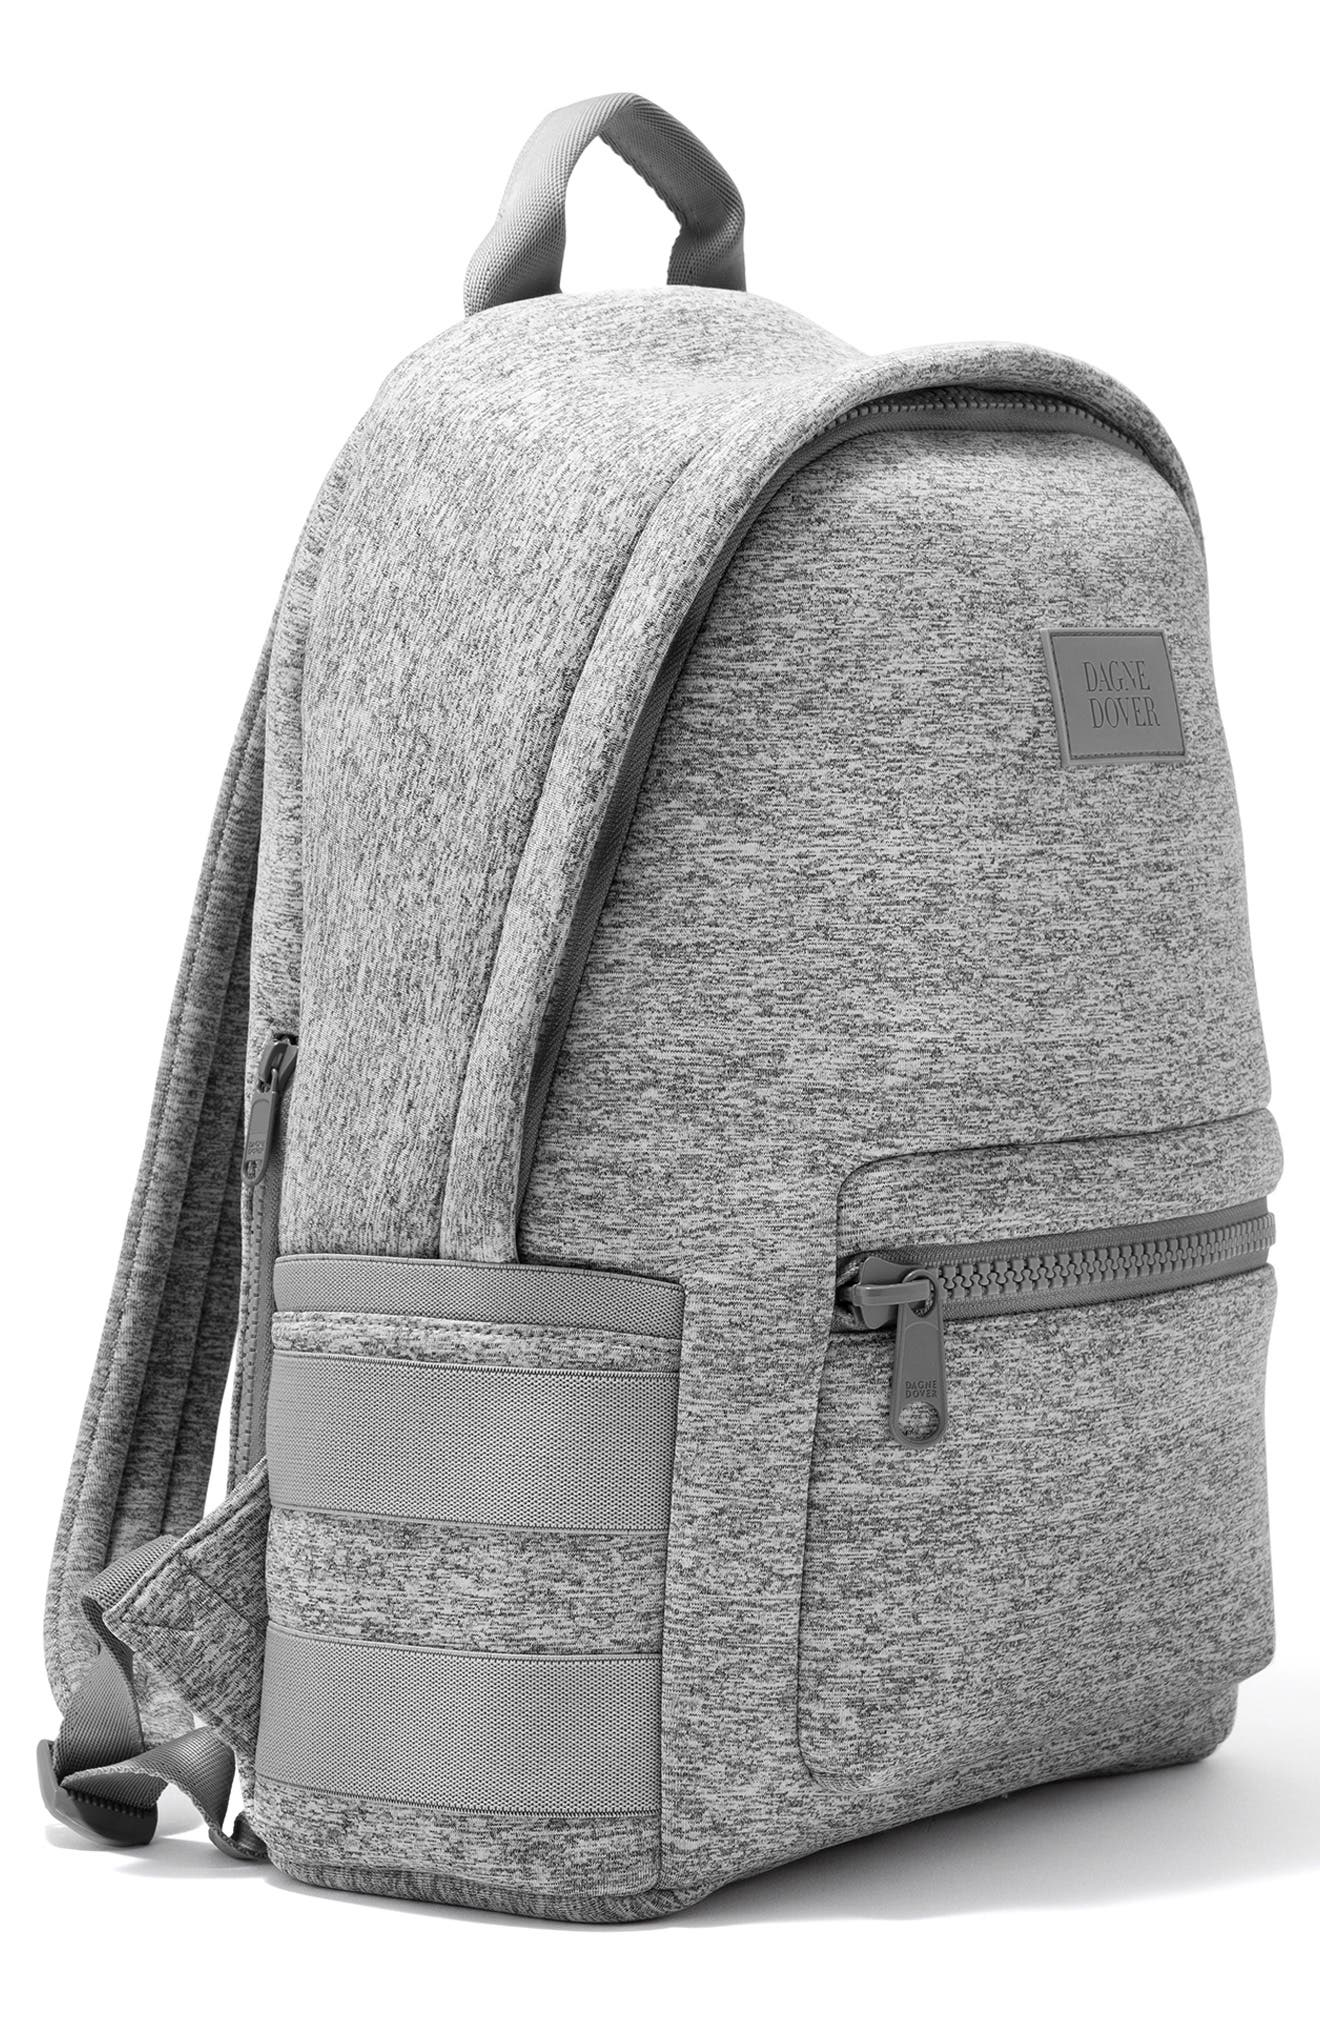 365 Dakota Neoprene Backpack,                             Alternate thumbnail 5, color,                             HEATHER GREY